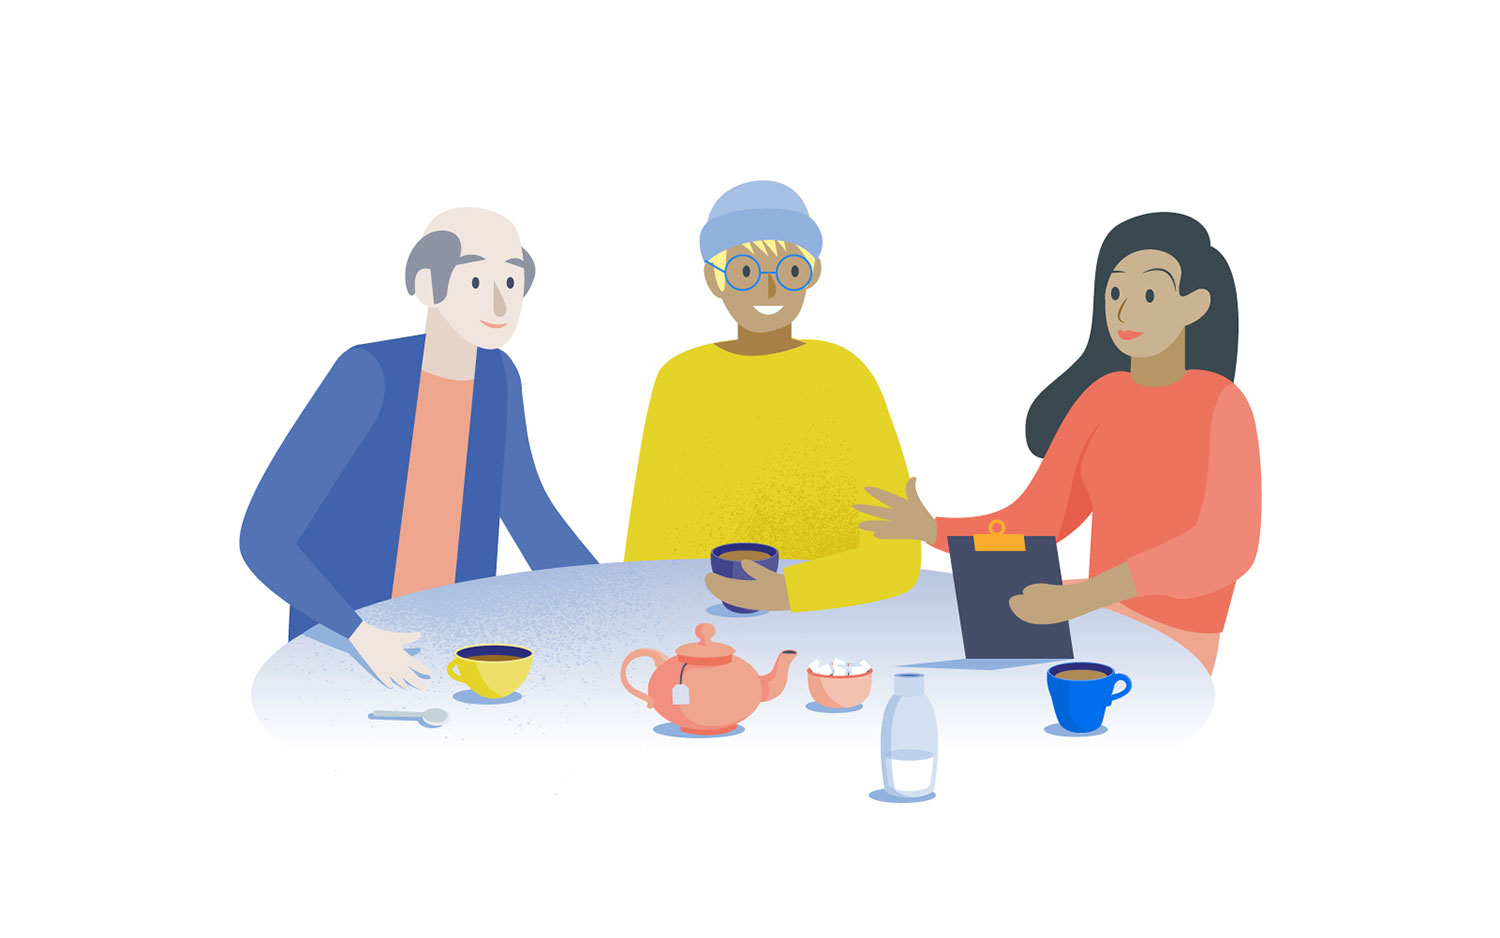 a group of people around a table conducting research